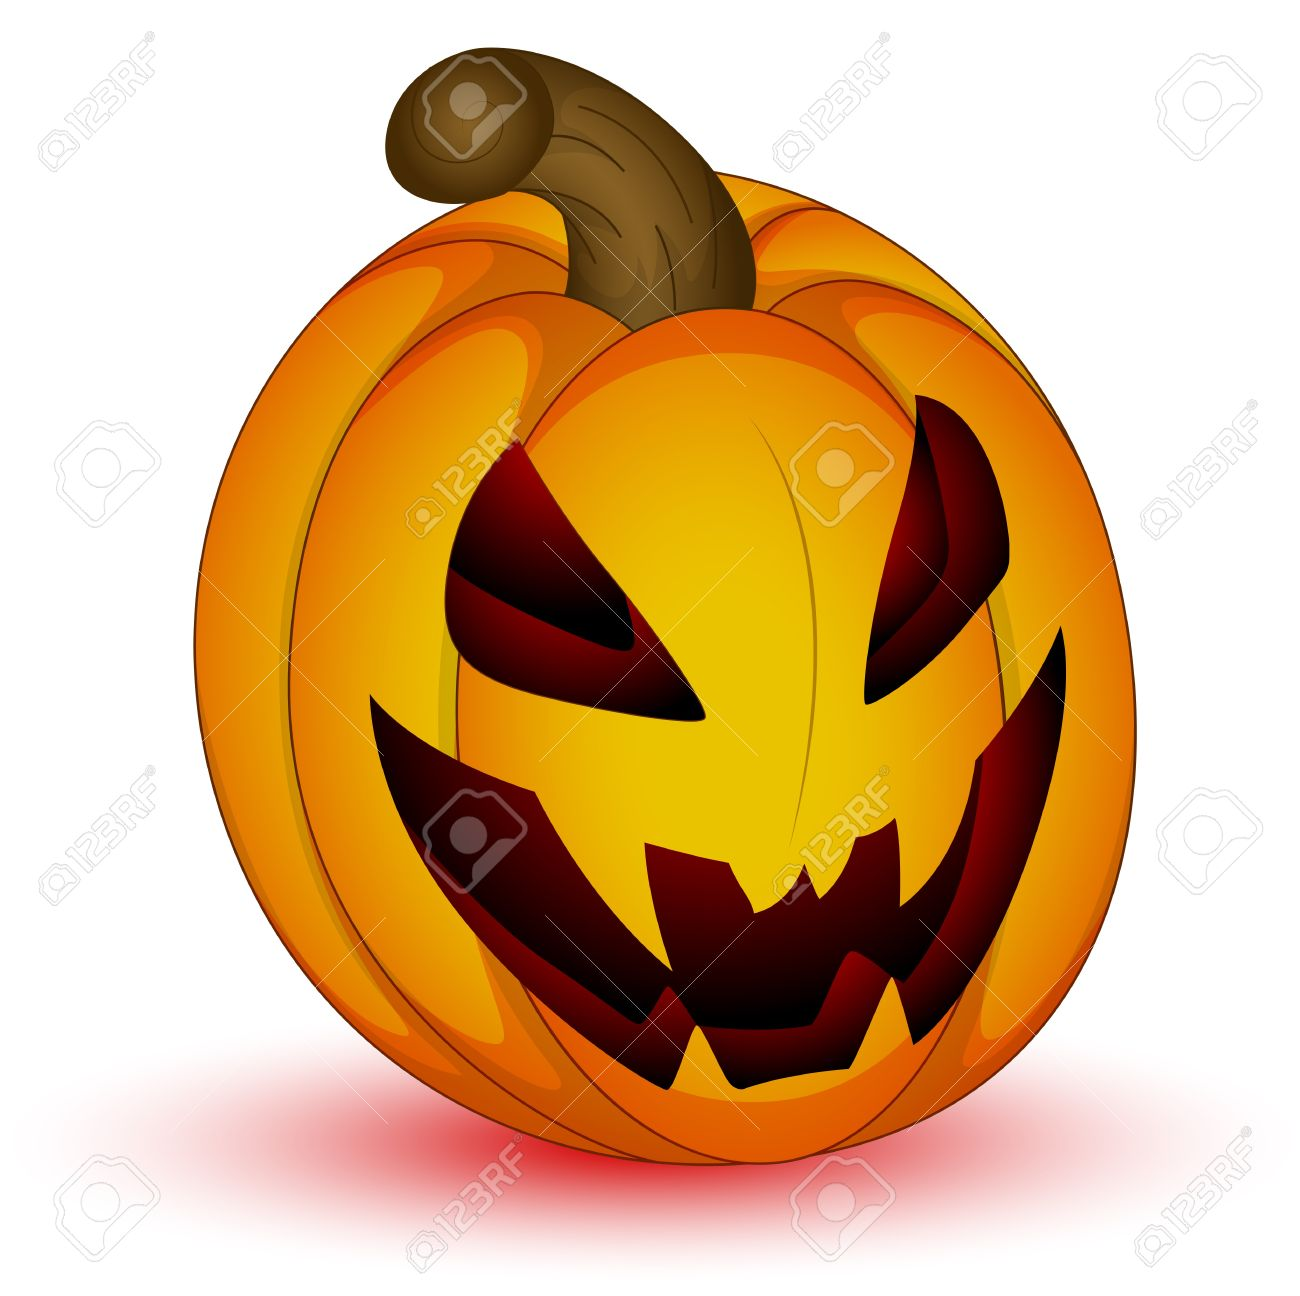 scary halloween jack o lantern royalty free cliparts vectors and